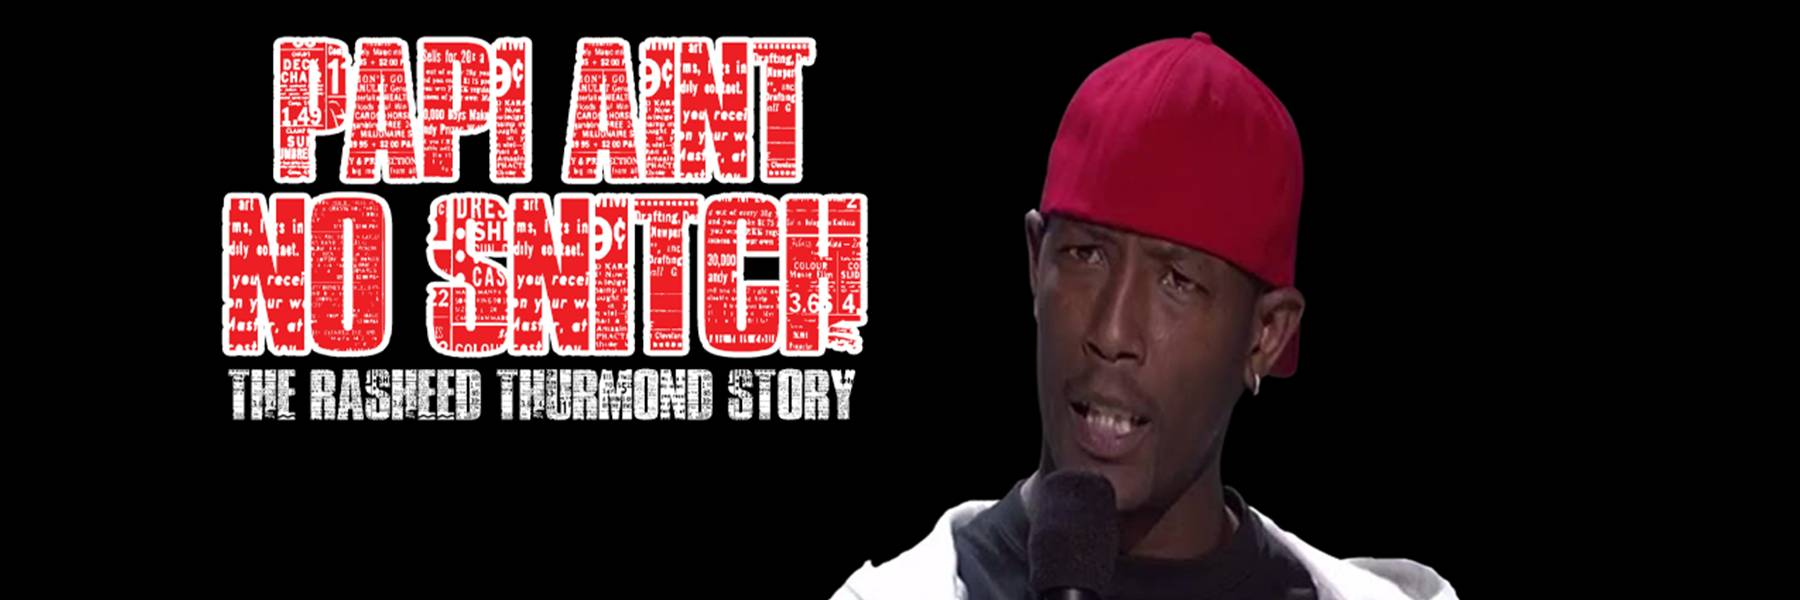 Papi Ain't No Snitch: The Rasheed Thurmond Story Documentary